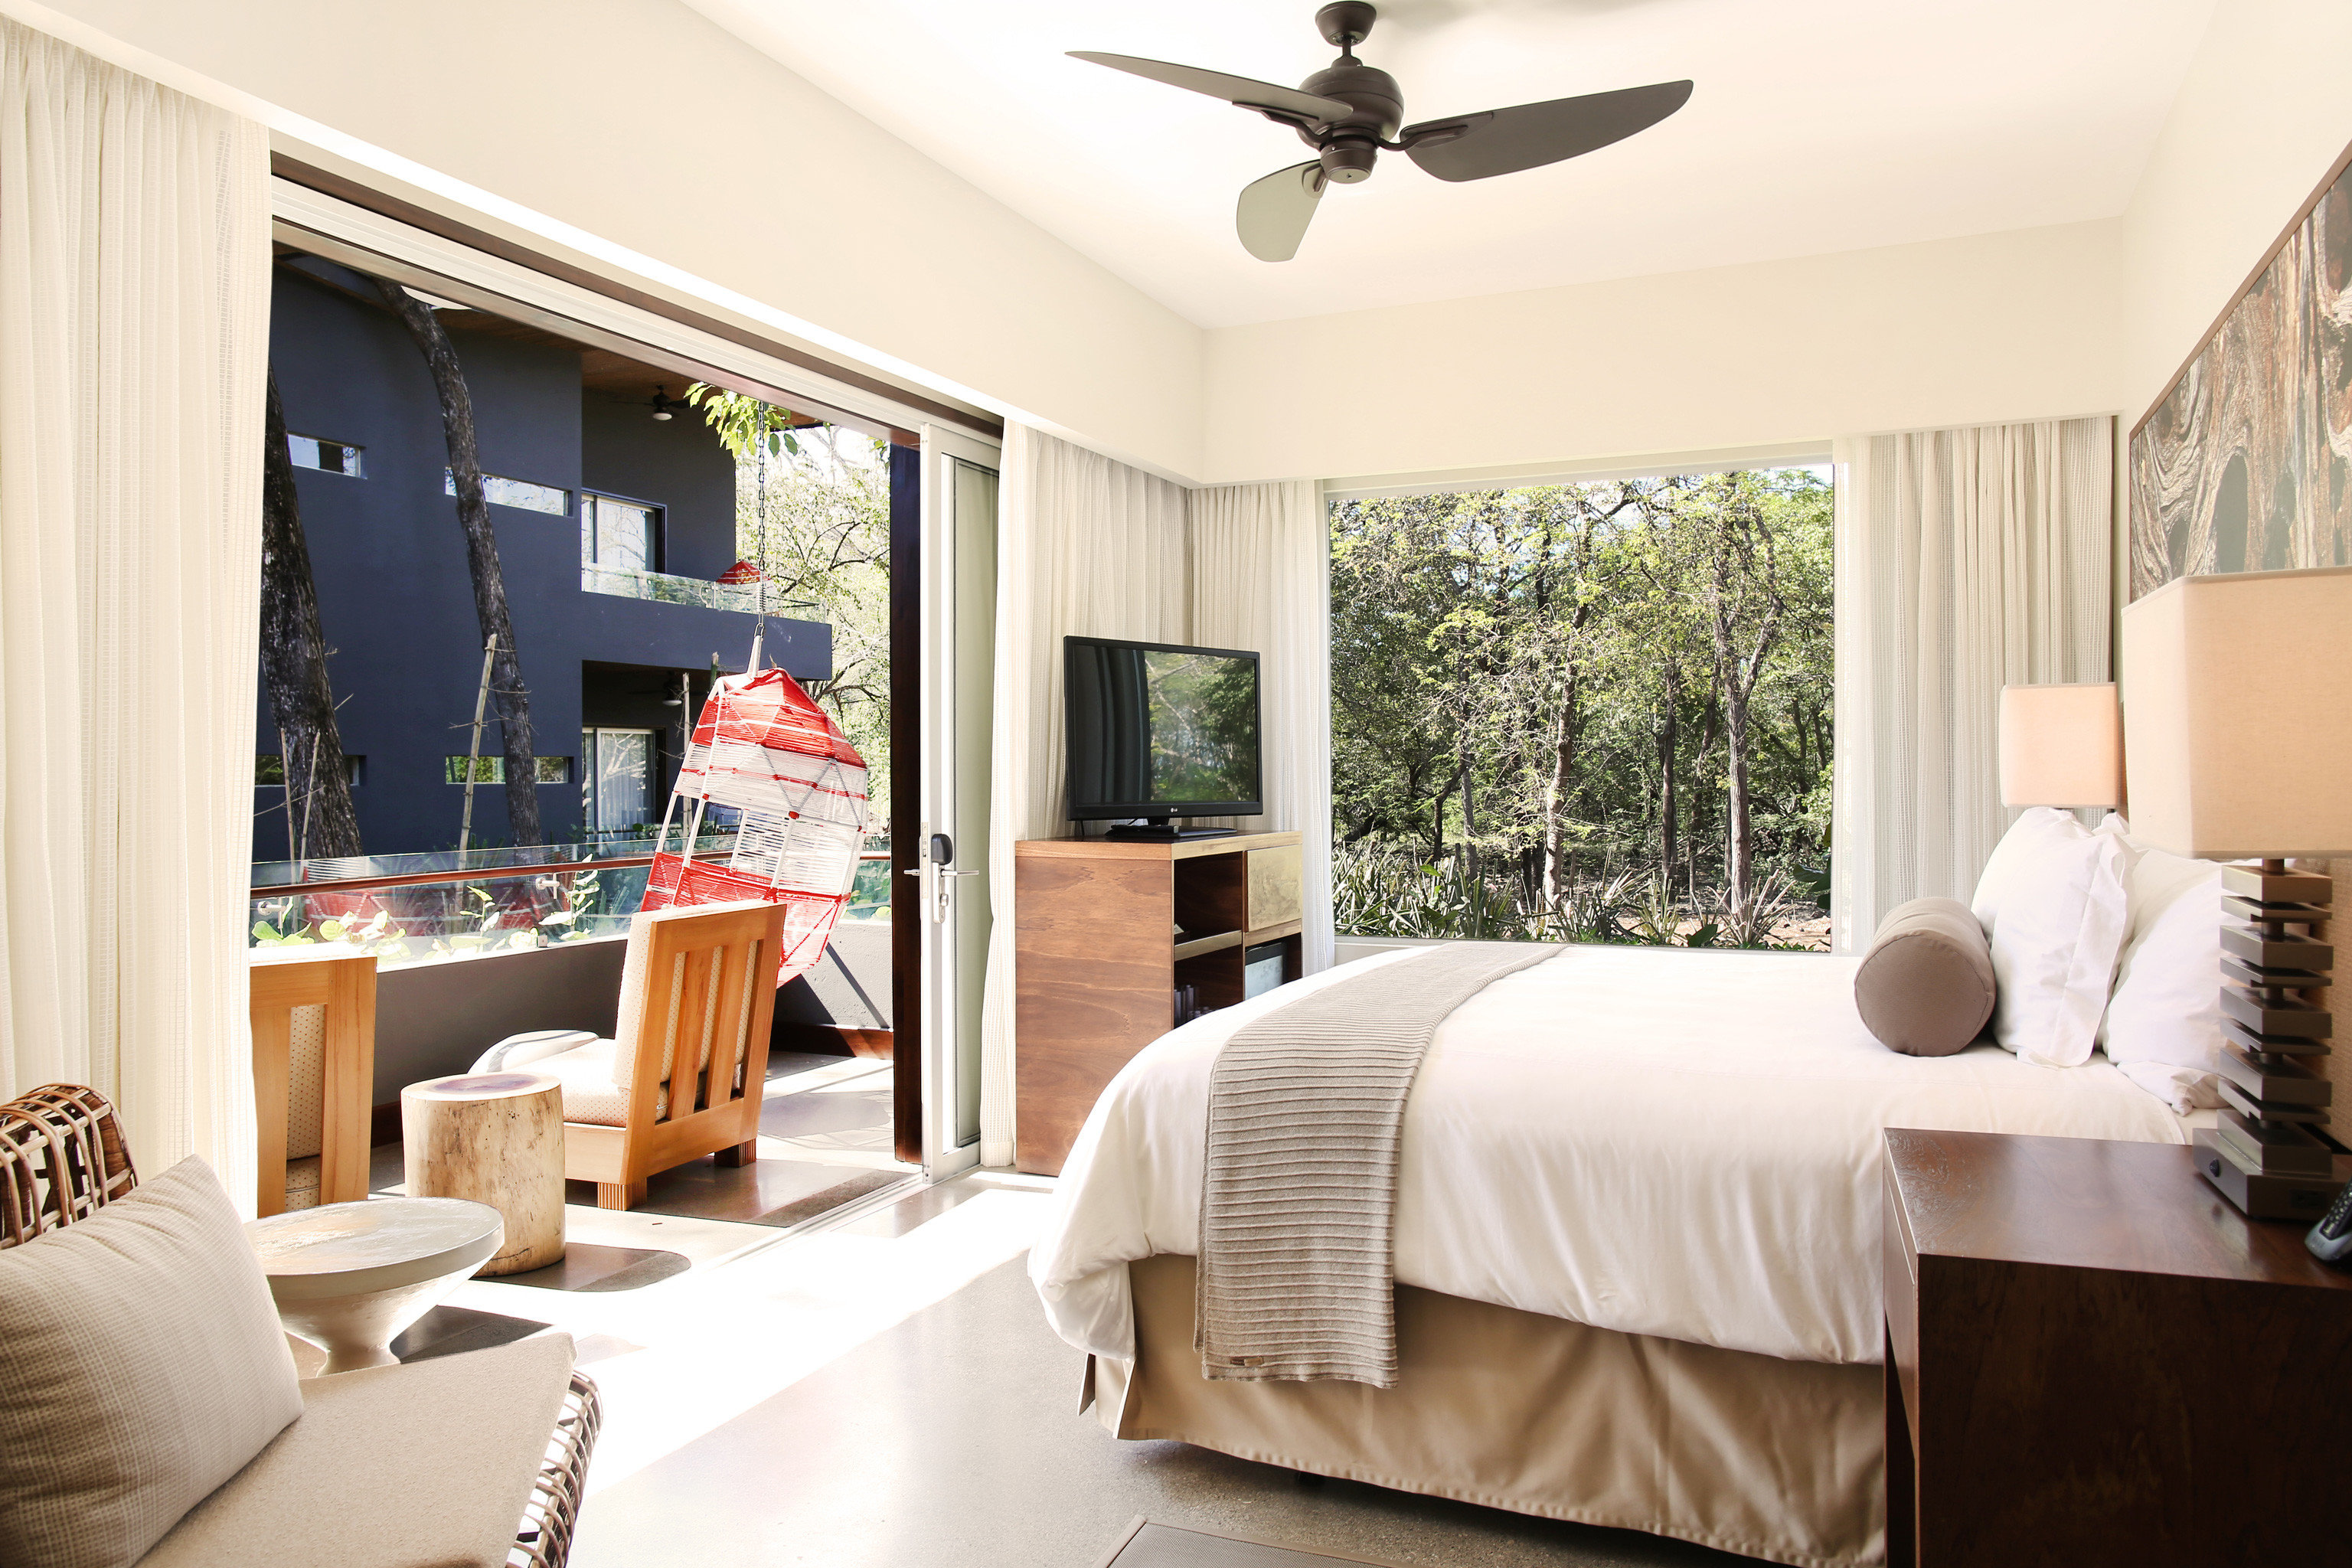 Balcony Beachfront Bedroom Boutique Elegant Hip Hotels Scenic views Suite Waterfront indoor bed sofa room wall window ceiling hotel floor property living room home estate interior design real estate cottage Villa decorated furniture flat